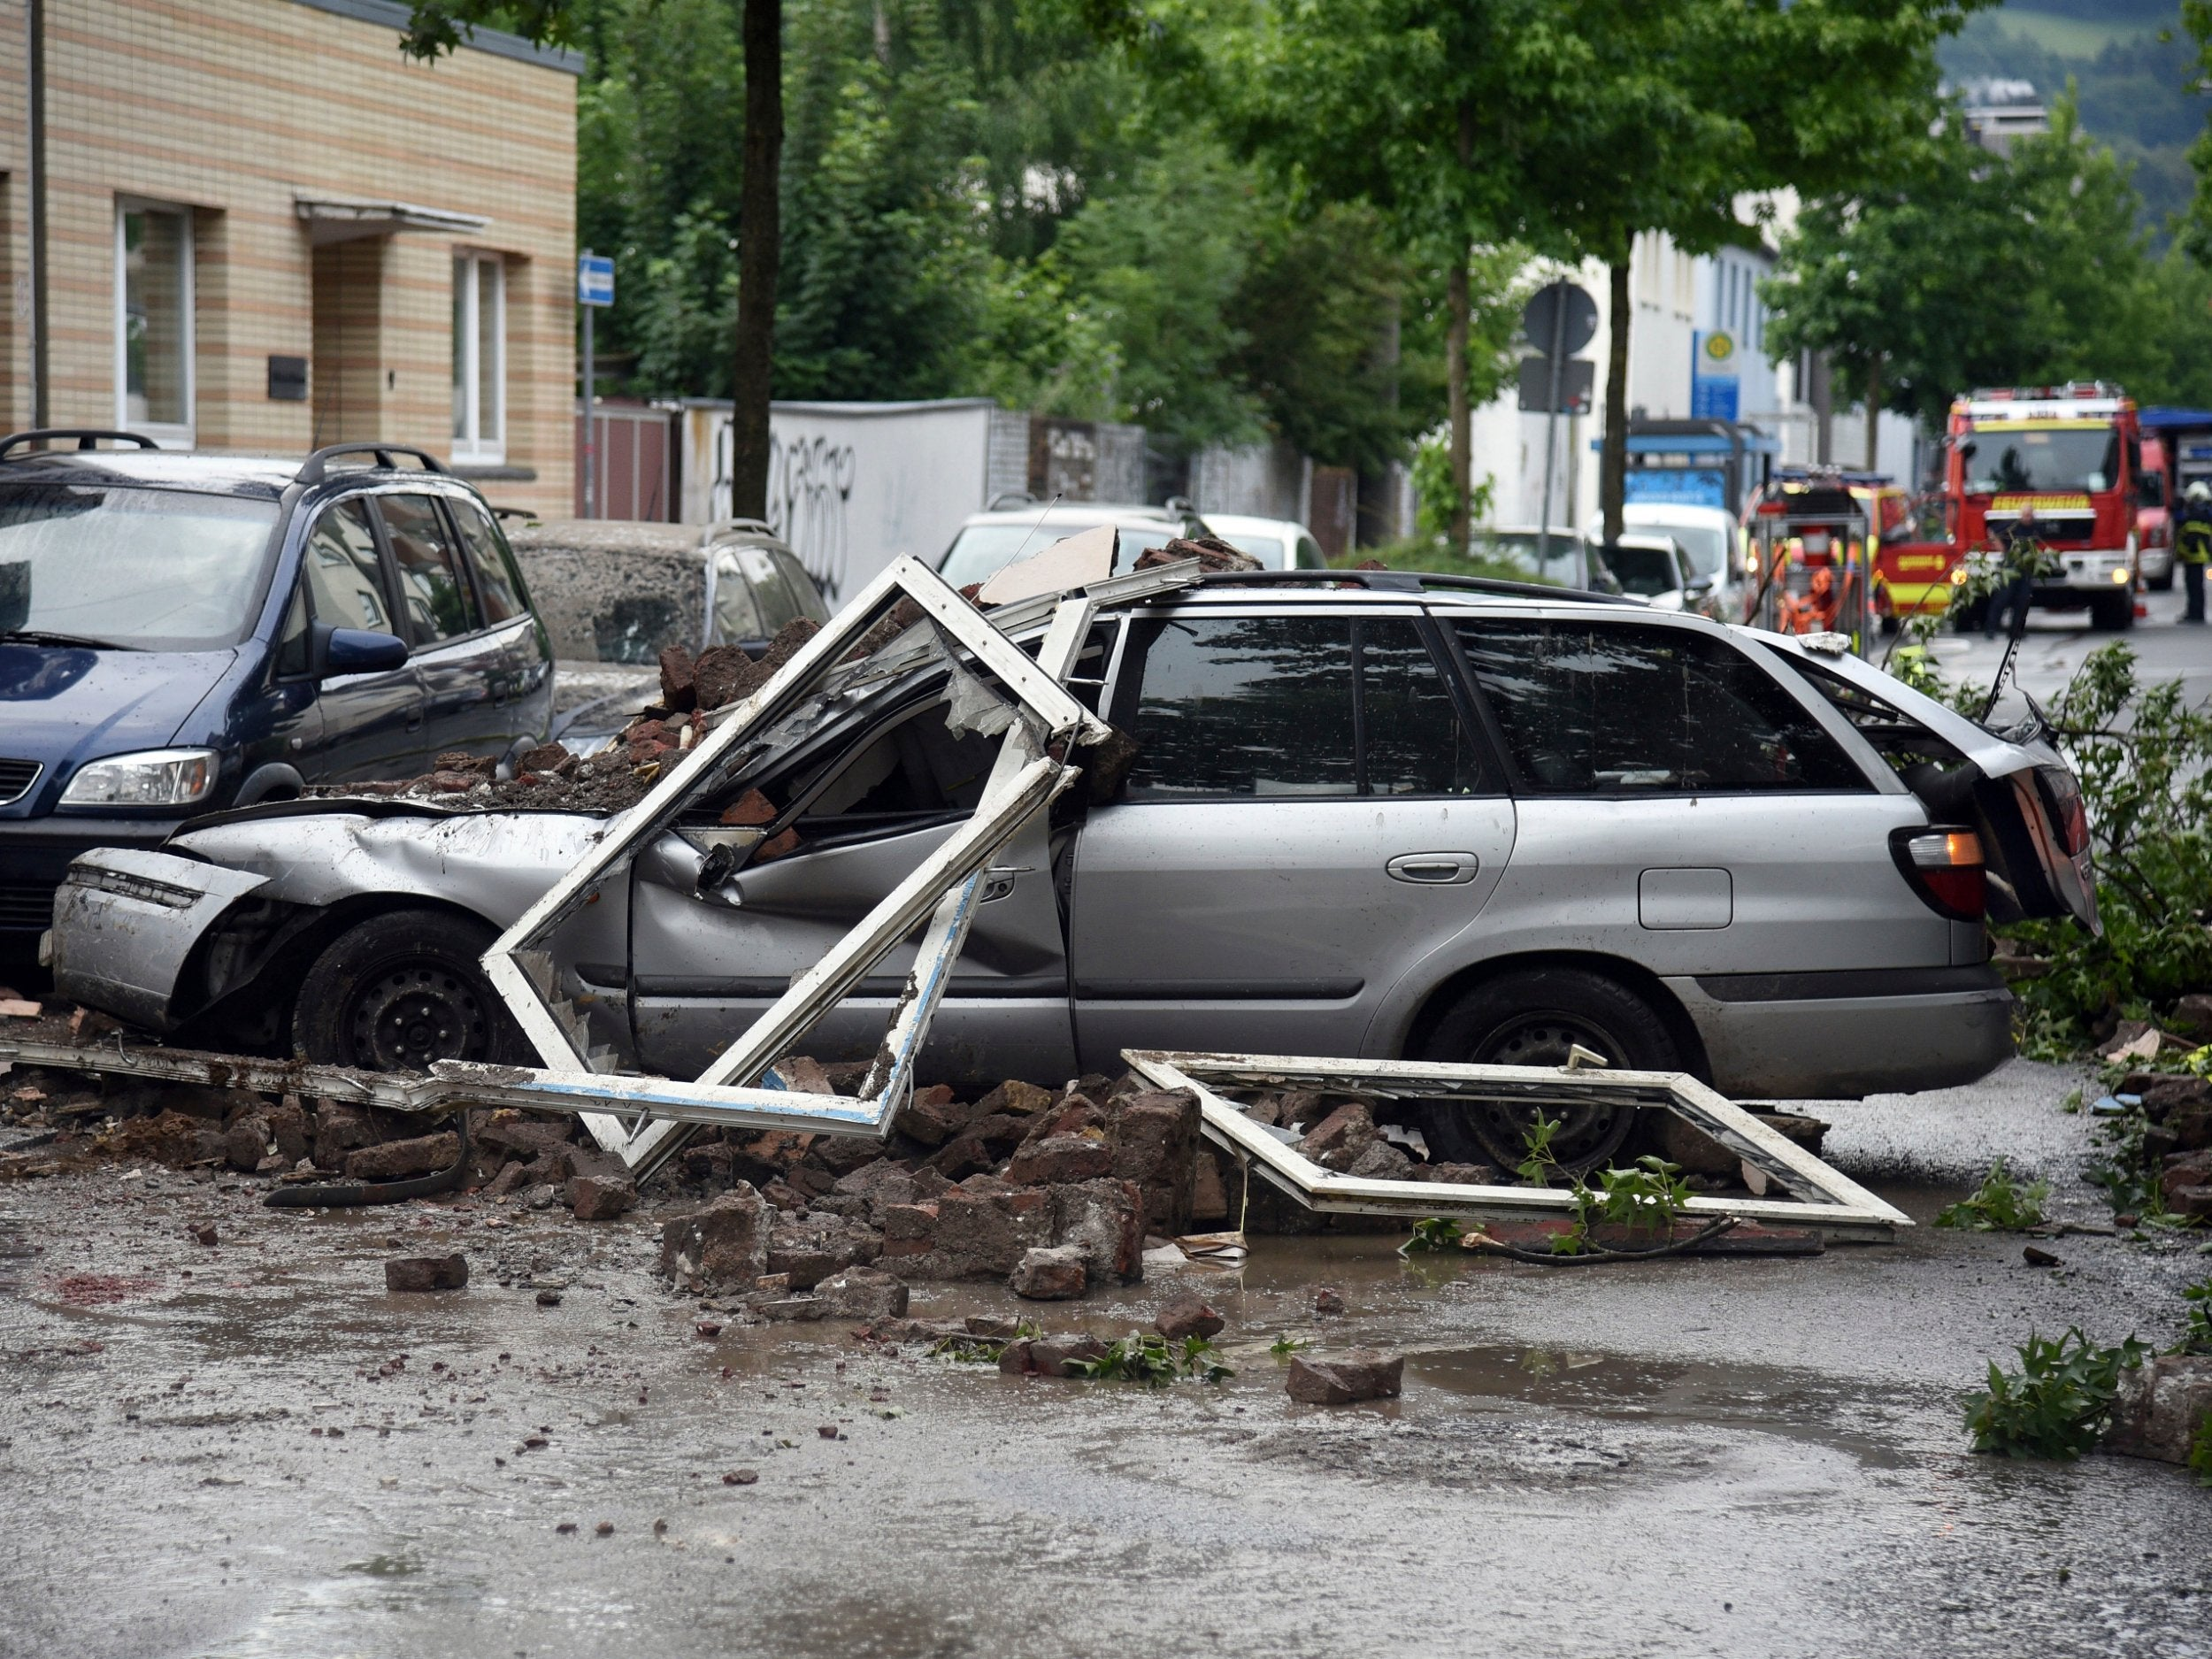 Germany explosion: Blast in Wuppertal destroys building and